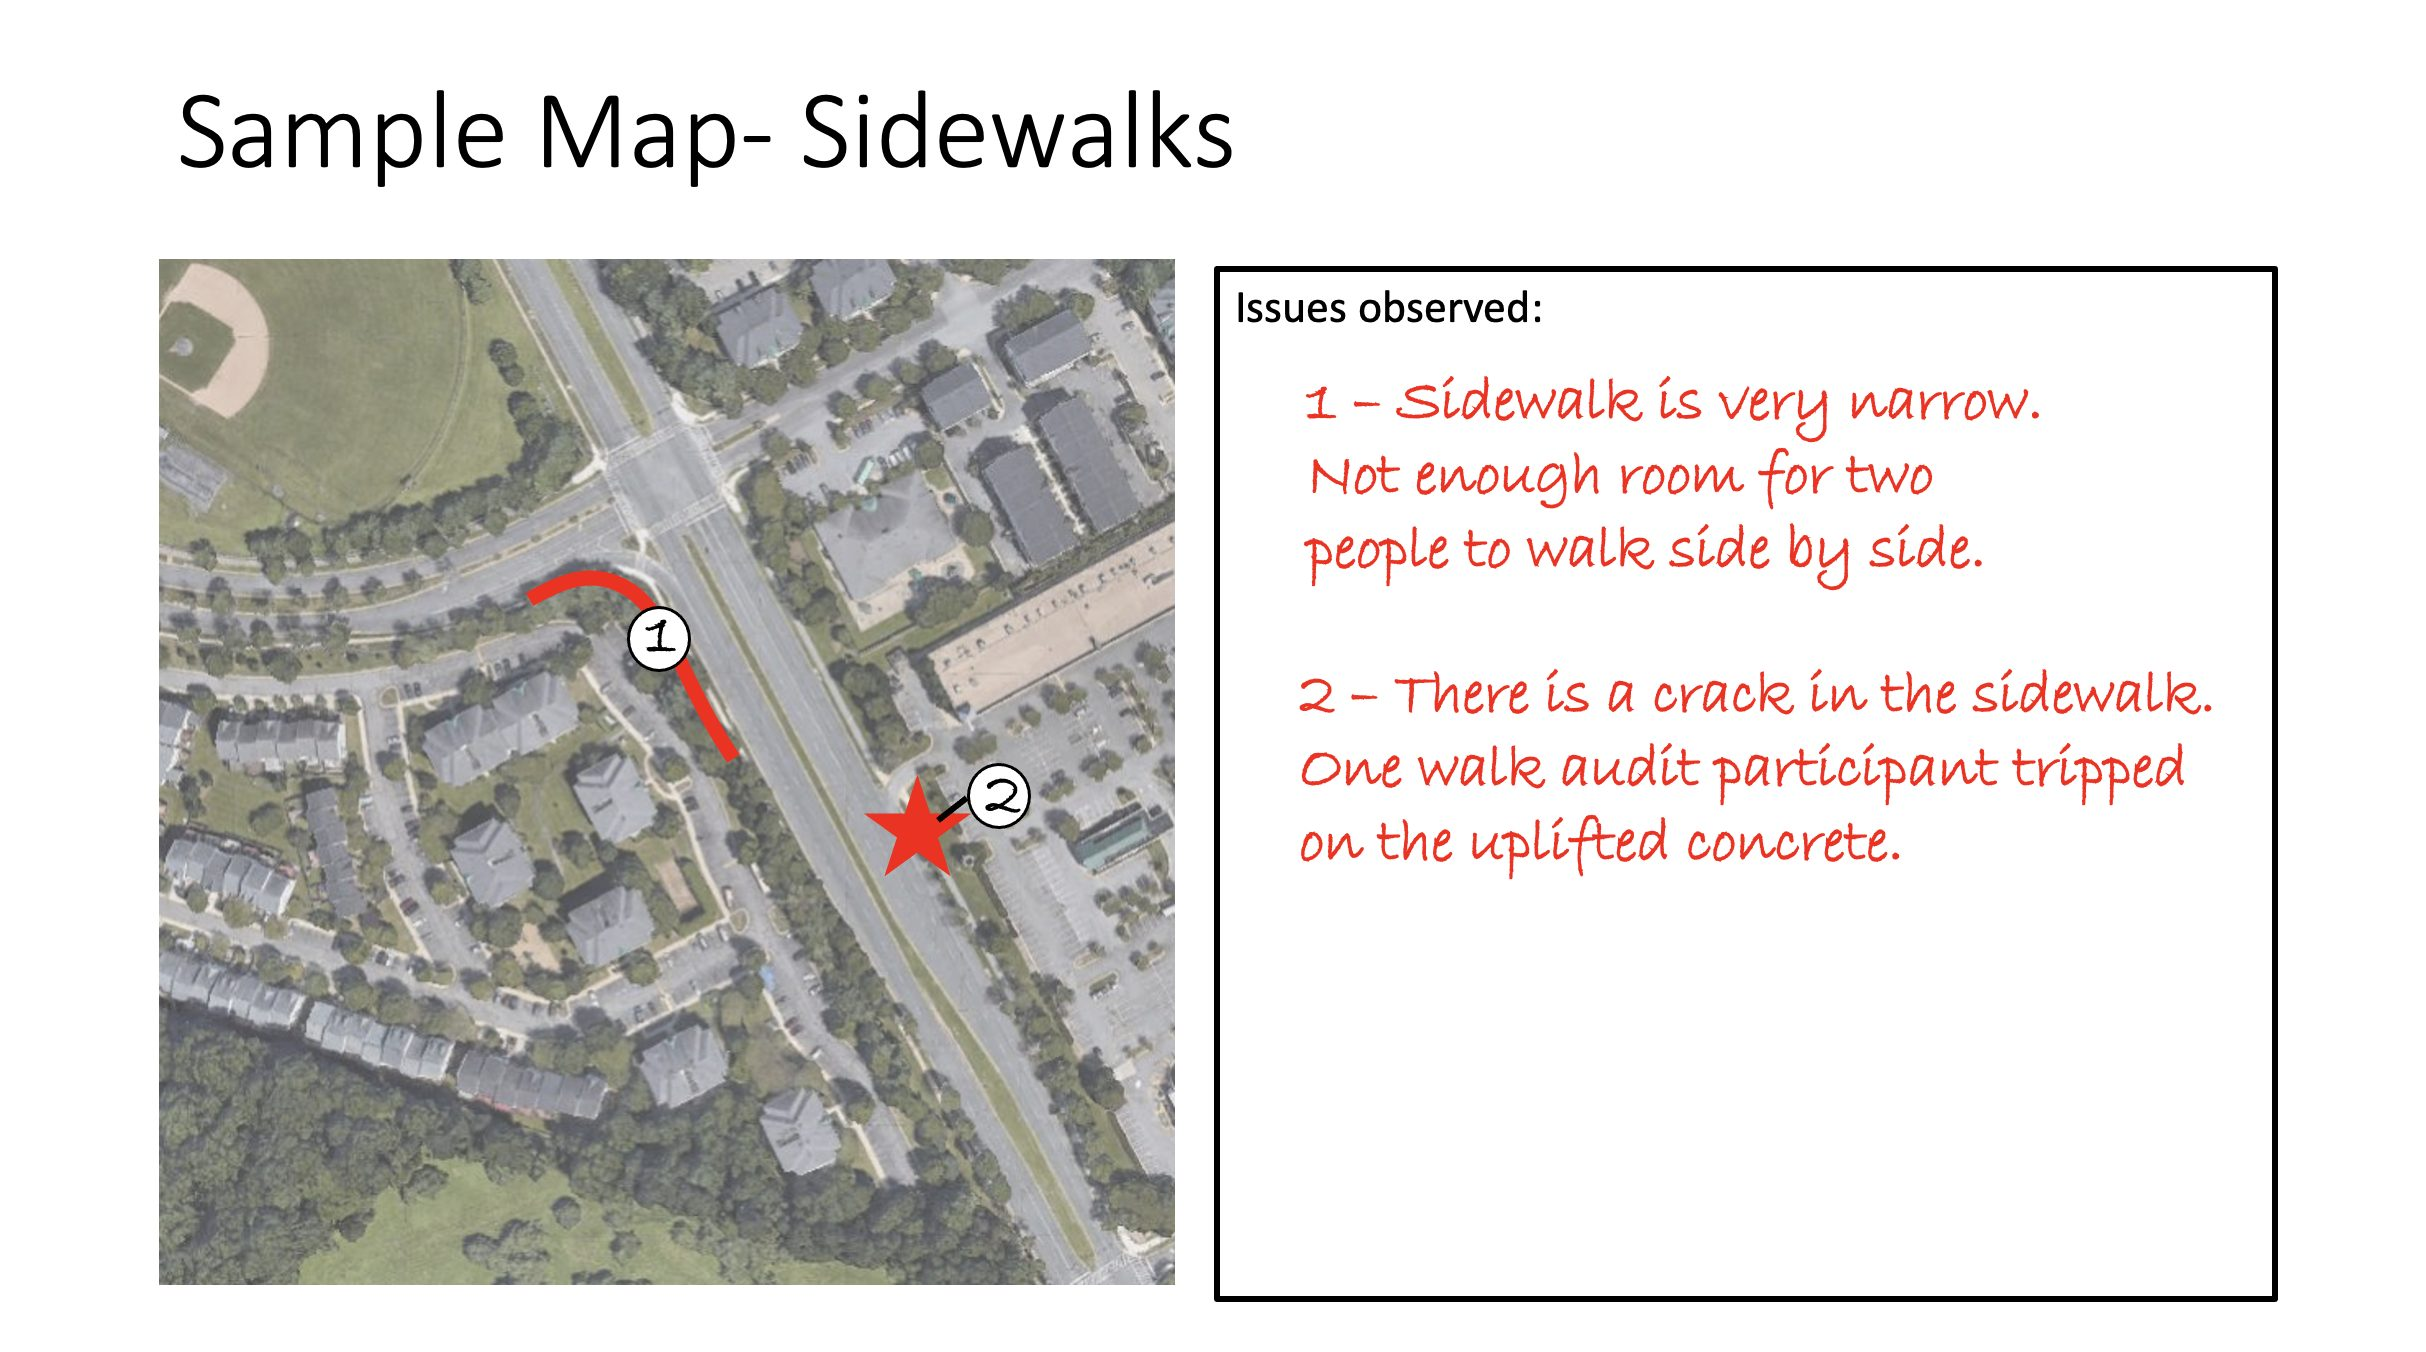 an example of how to fill out data collection for the walk audit